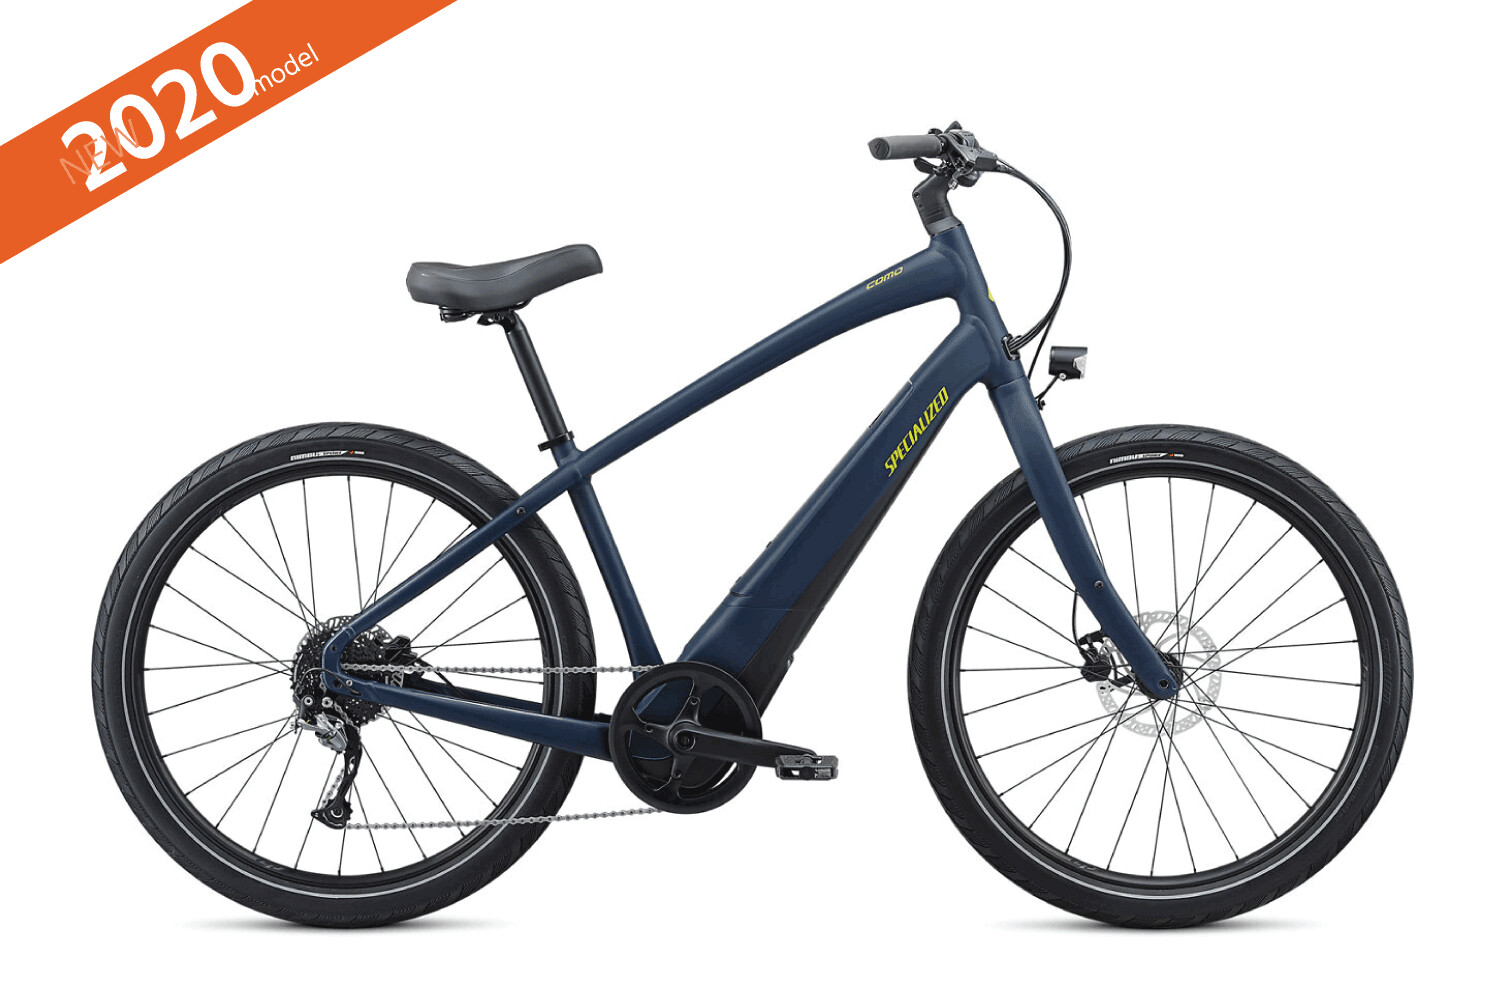 SPECIALIZED • Turbo Como 3.0 650b